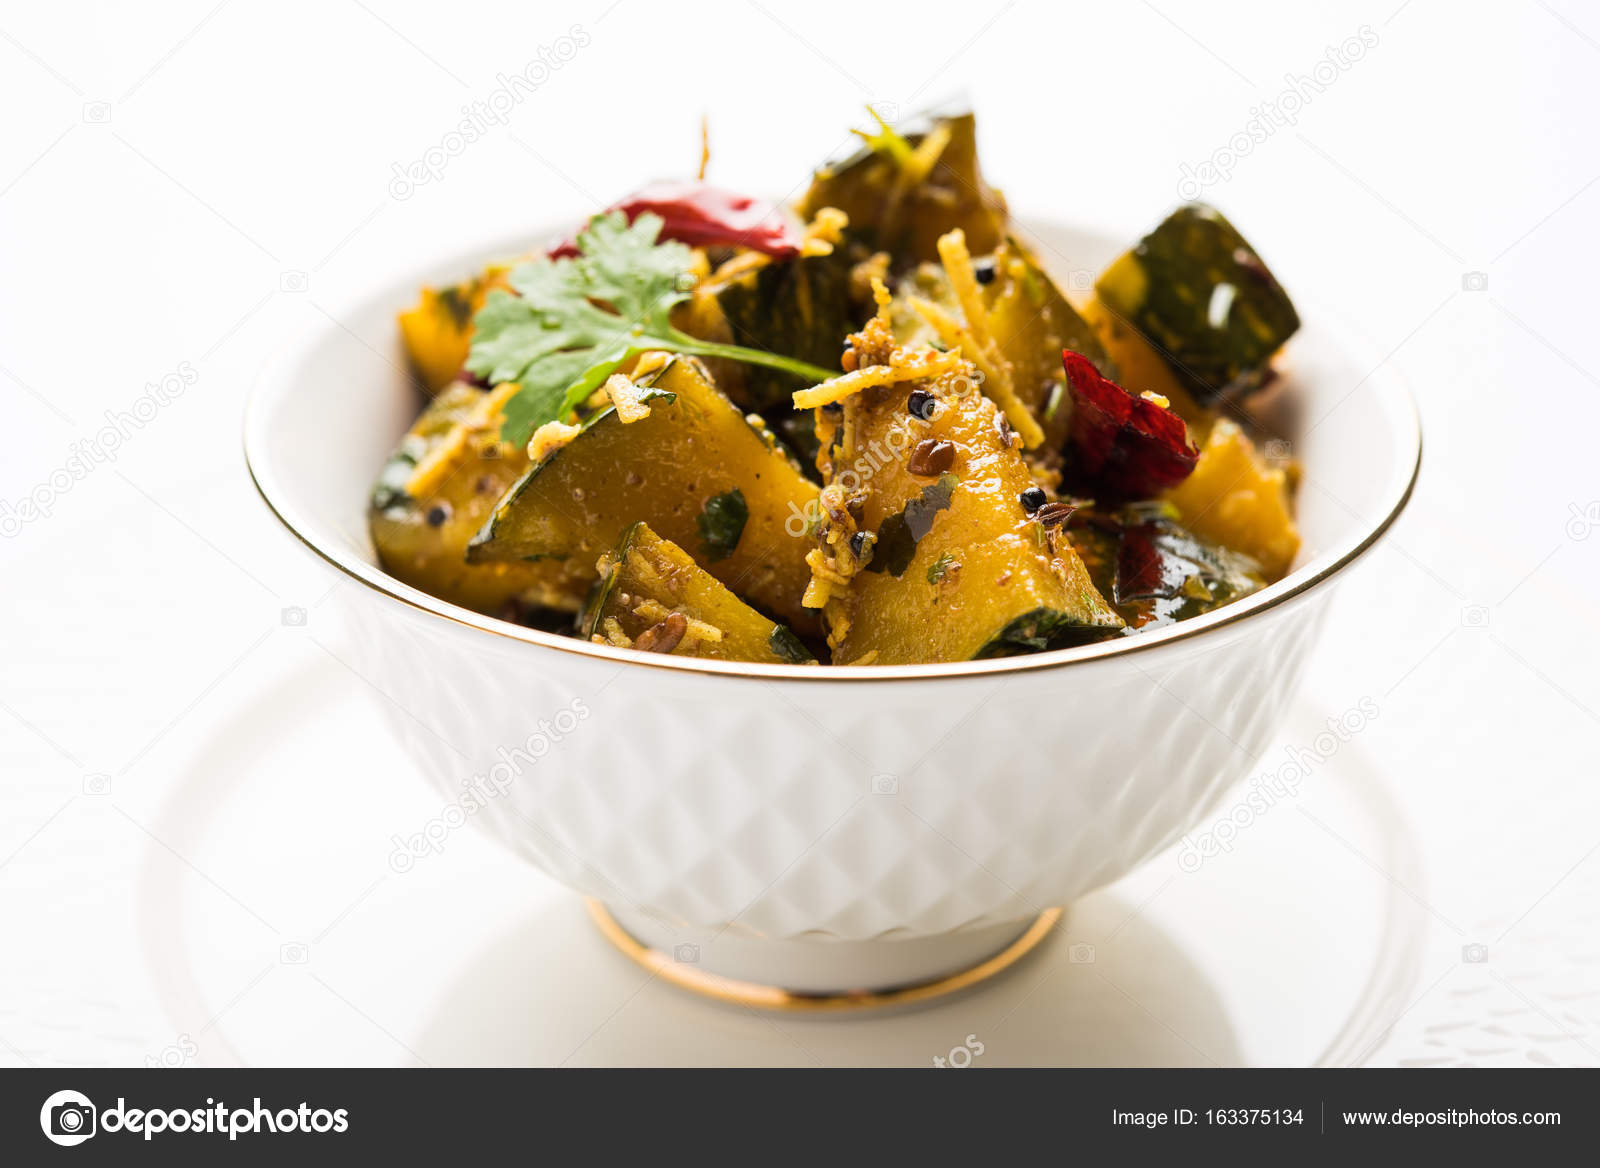 Popular indian main course vegetable pumpkin dry curry or kaddooor popular indian main course vegetable pumpkin dry curry or kaddooor kaddu ki sabzi in hindi forumfinder Image collections